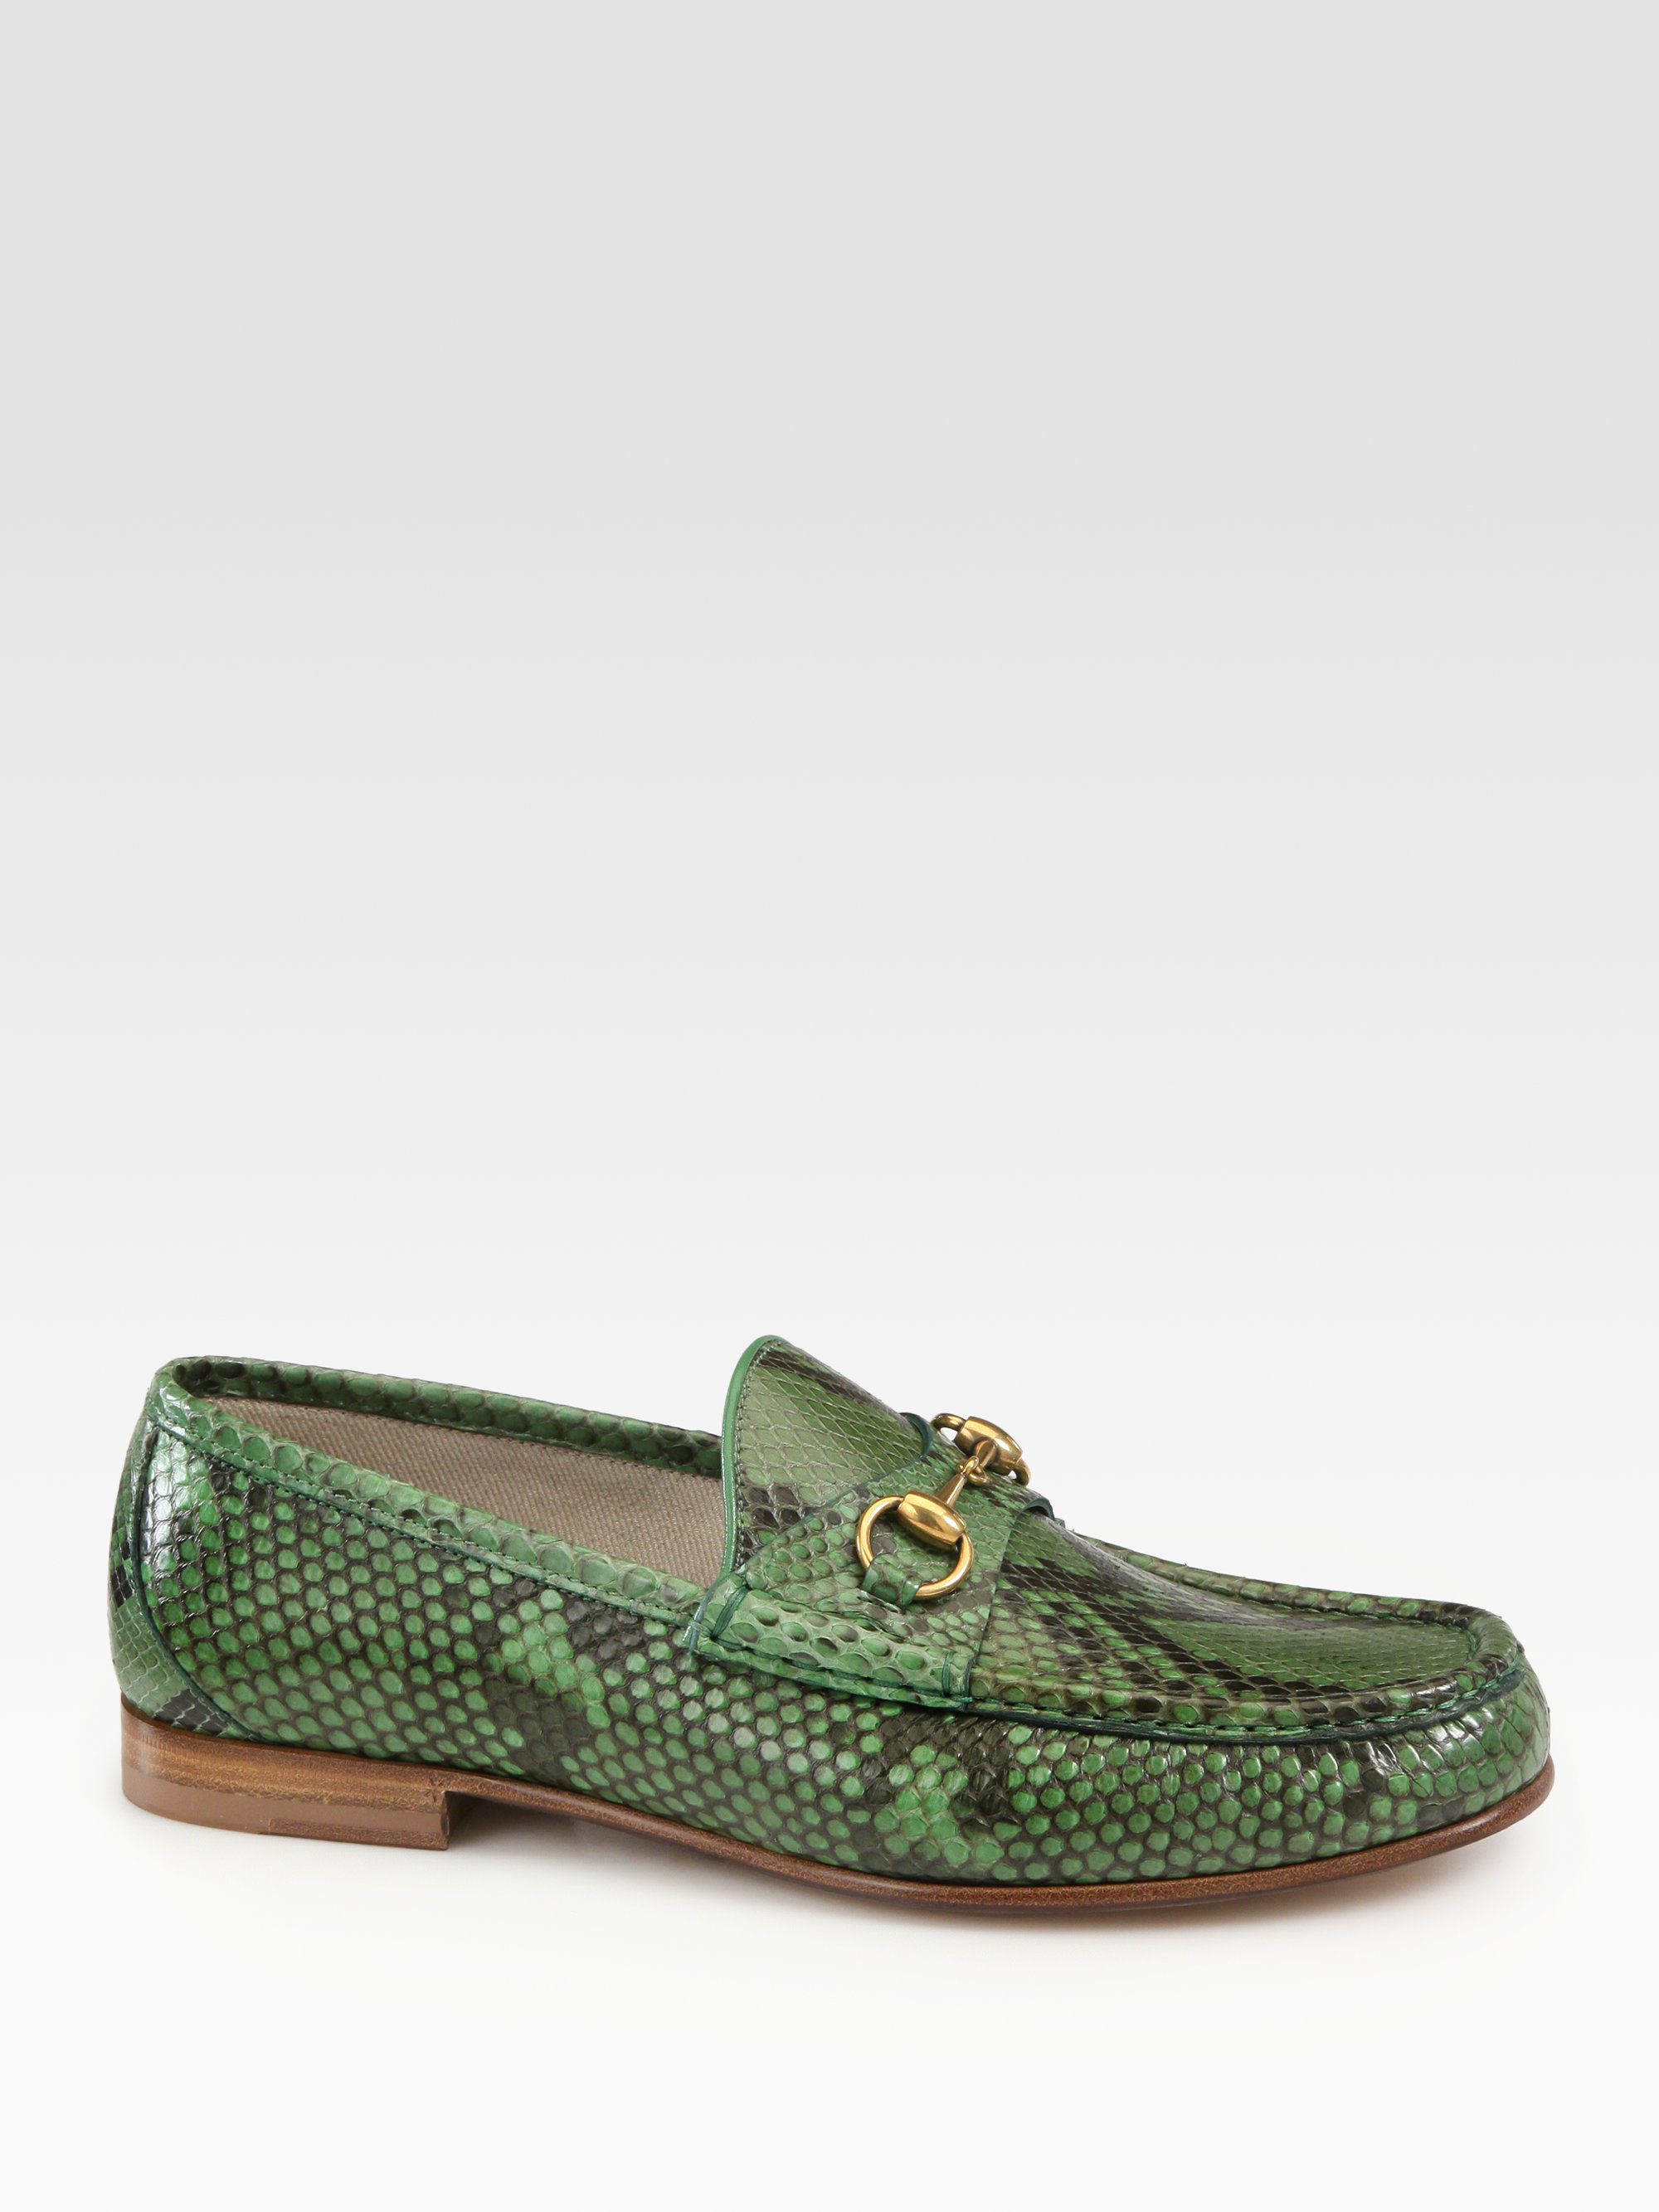 46407964efd Lyst - Gucci Green Python Horsebit Loafers in Green for Men